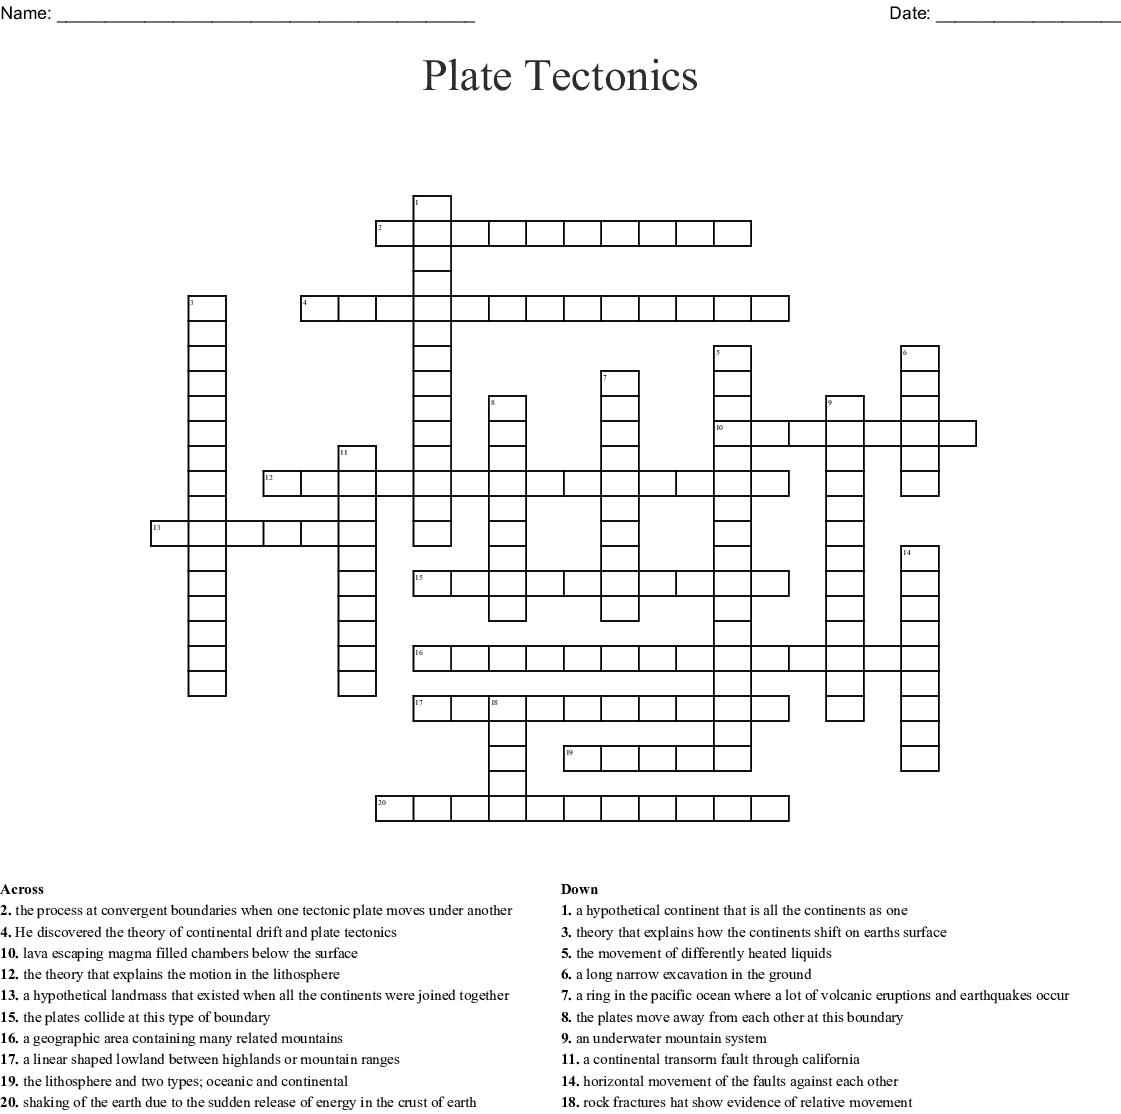 Bestseller The Theory Of Plate Tectonics Worksheet Answers